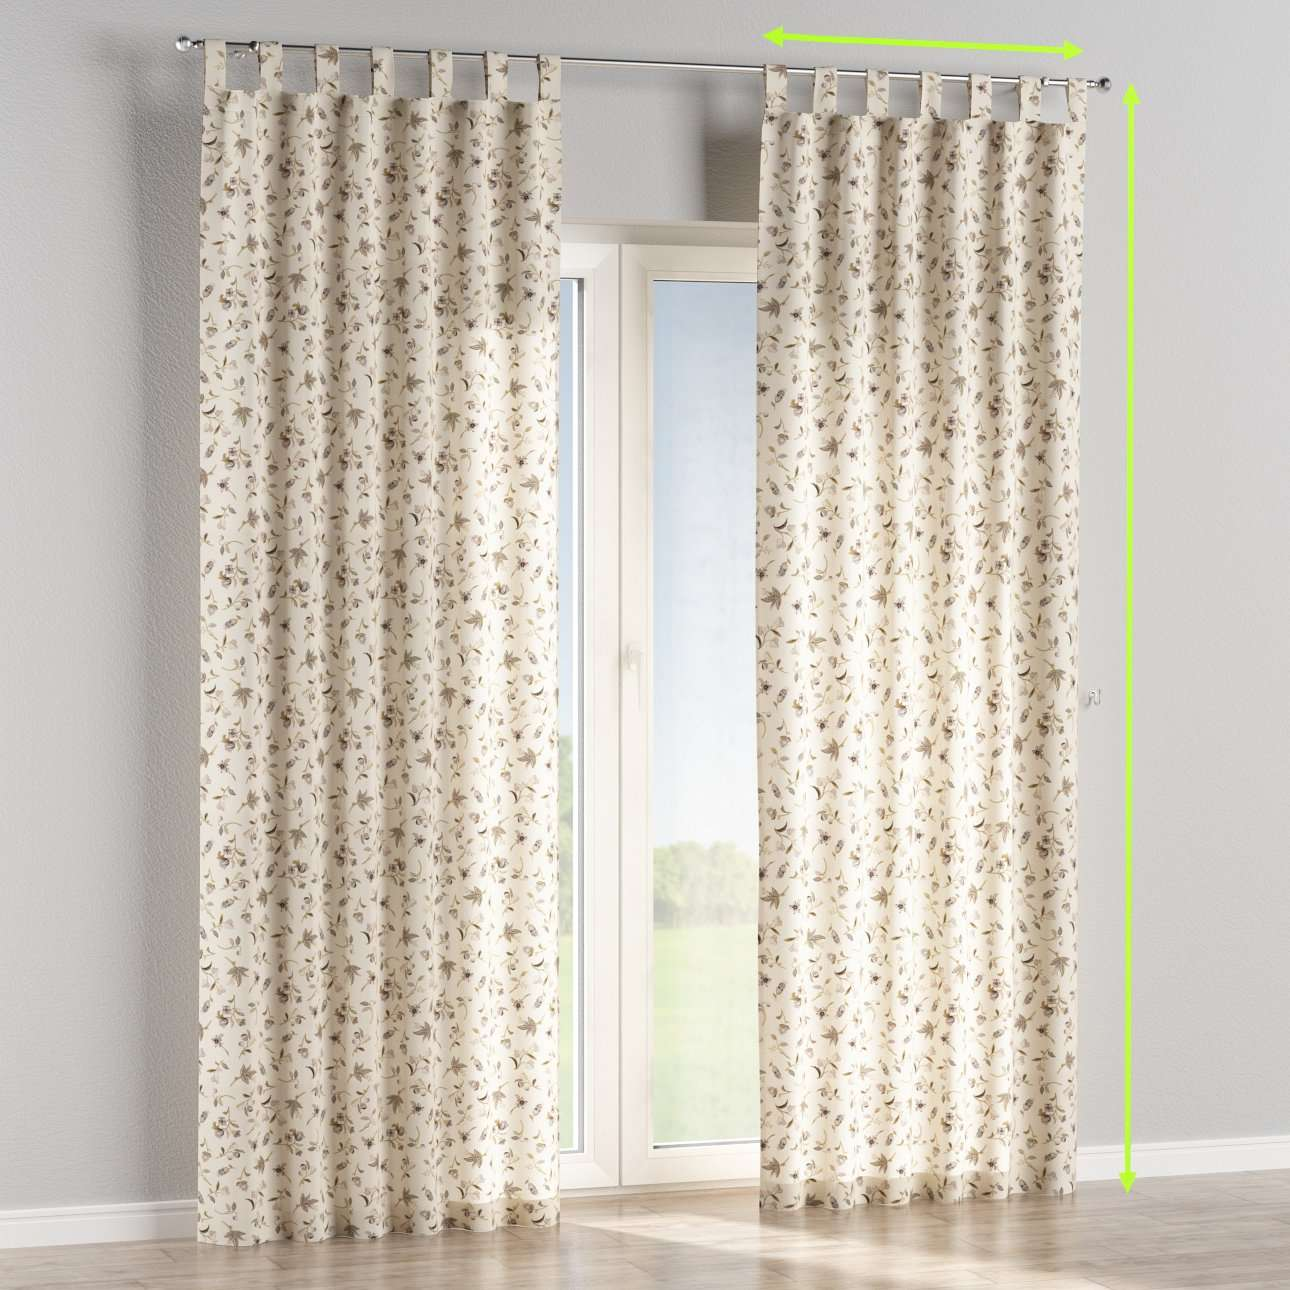 Tab top lined curtains in collection Londres, fabric: 122-04